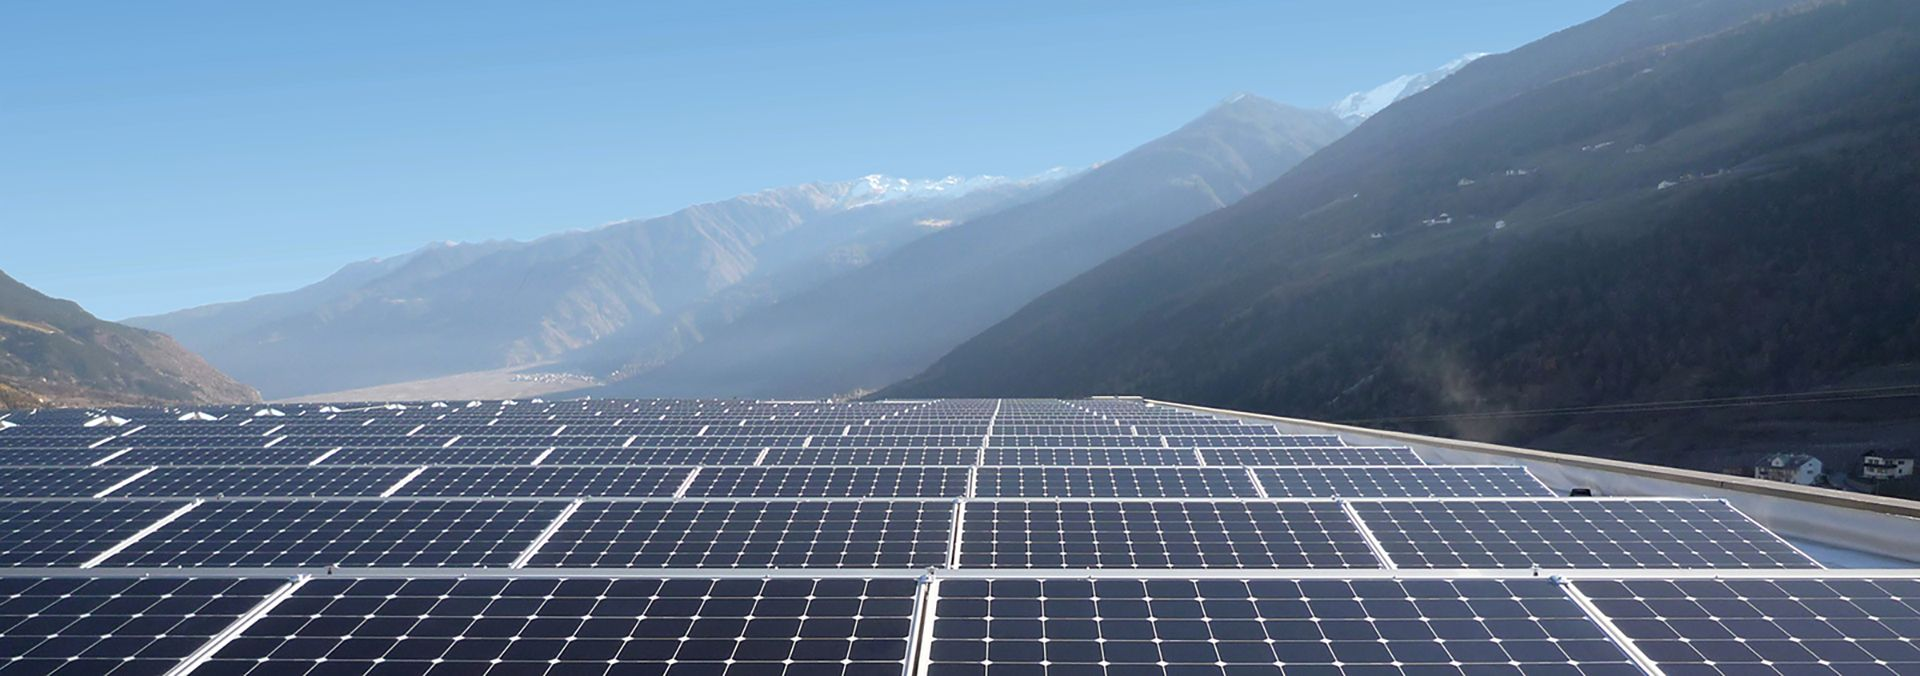 solar panel array in the mountains